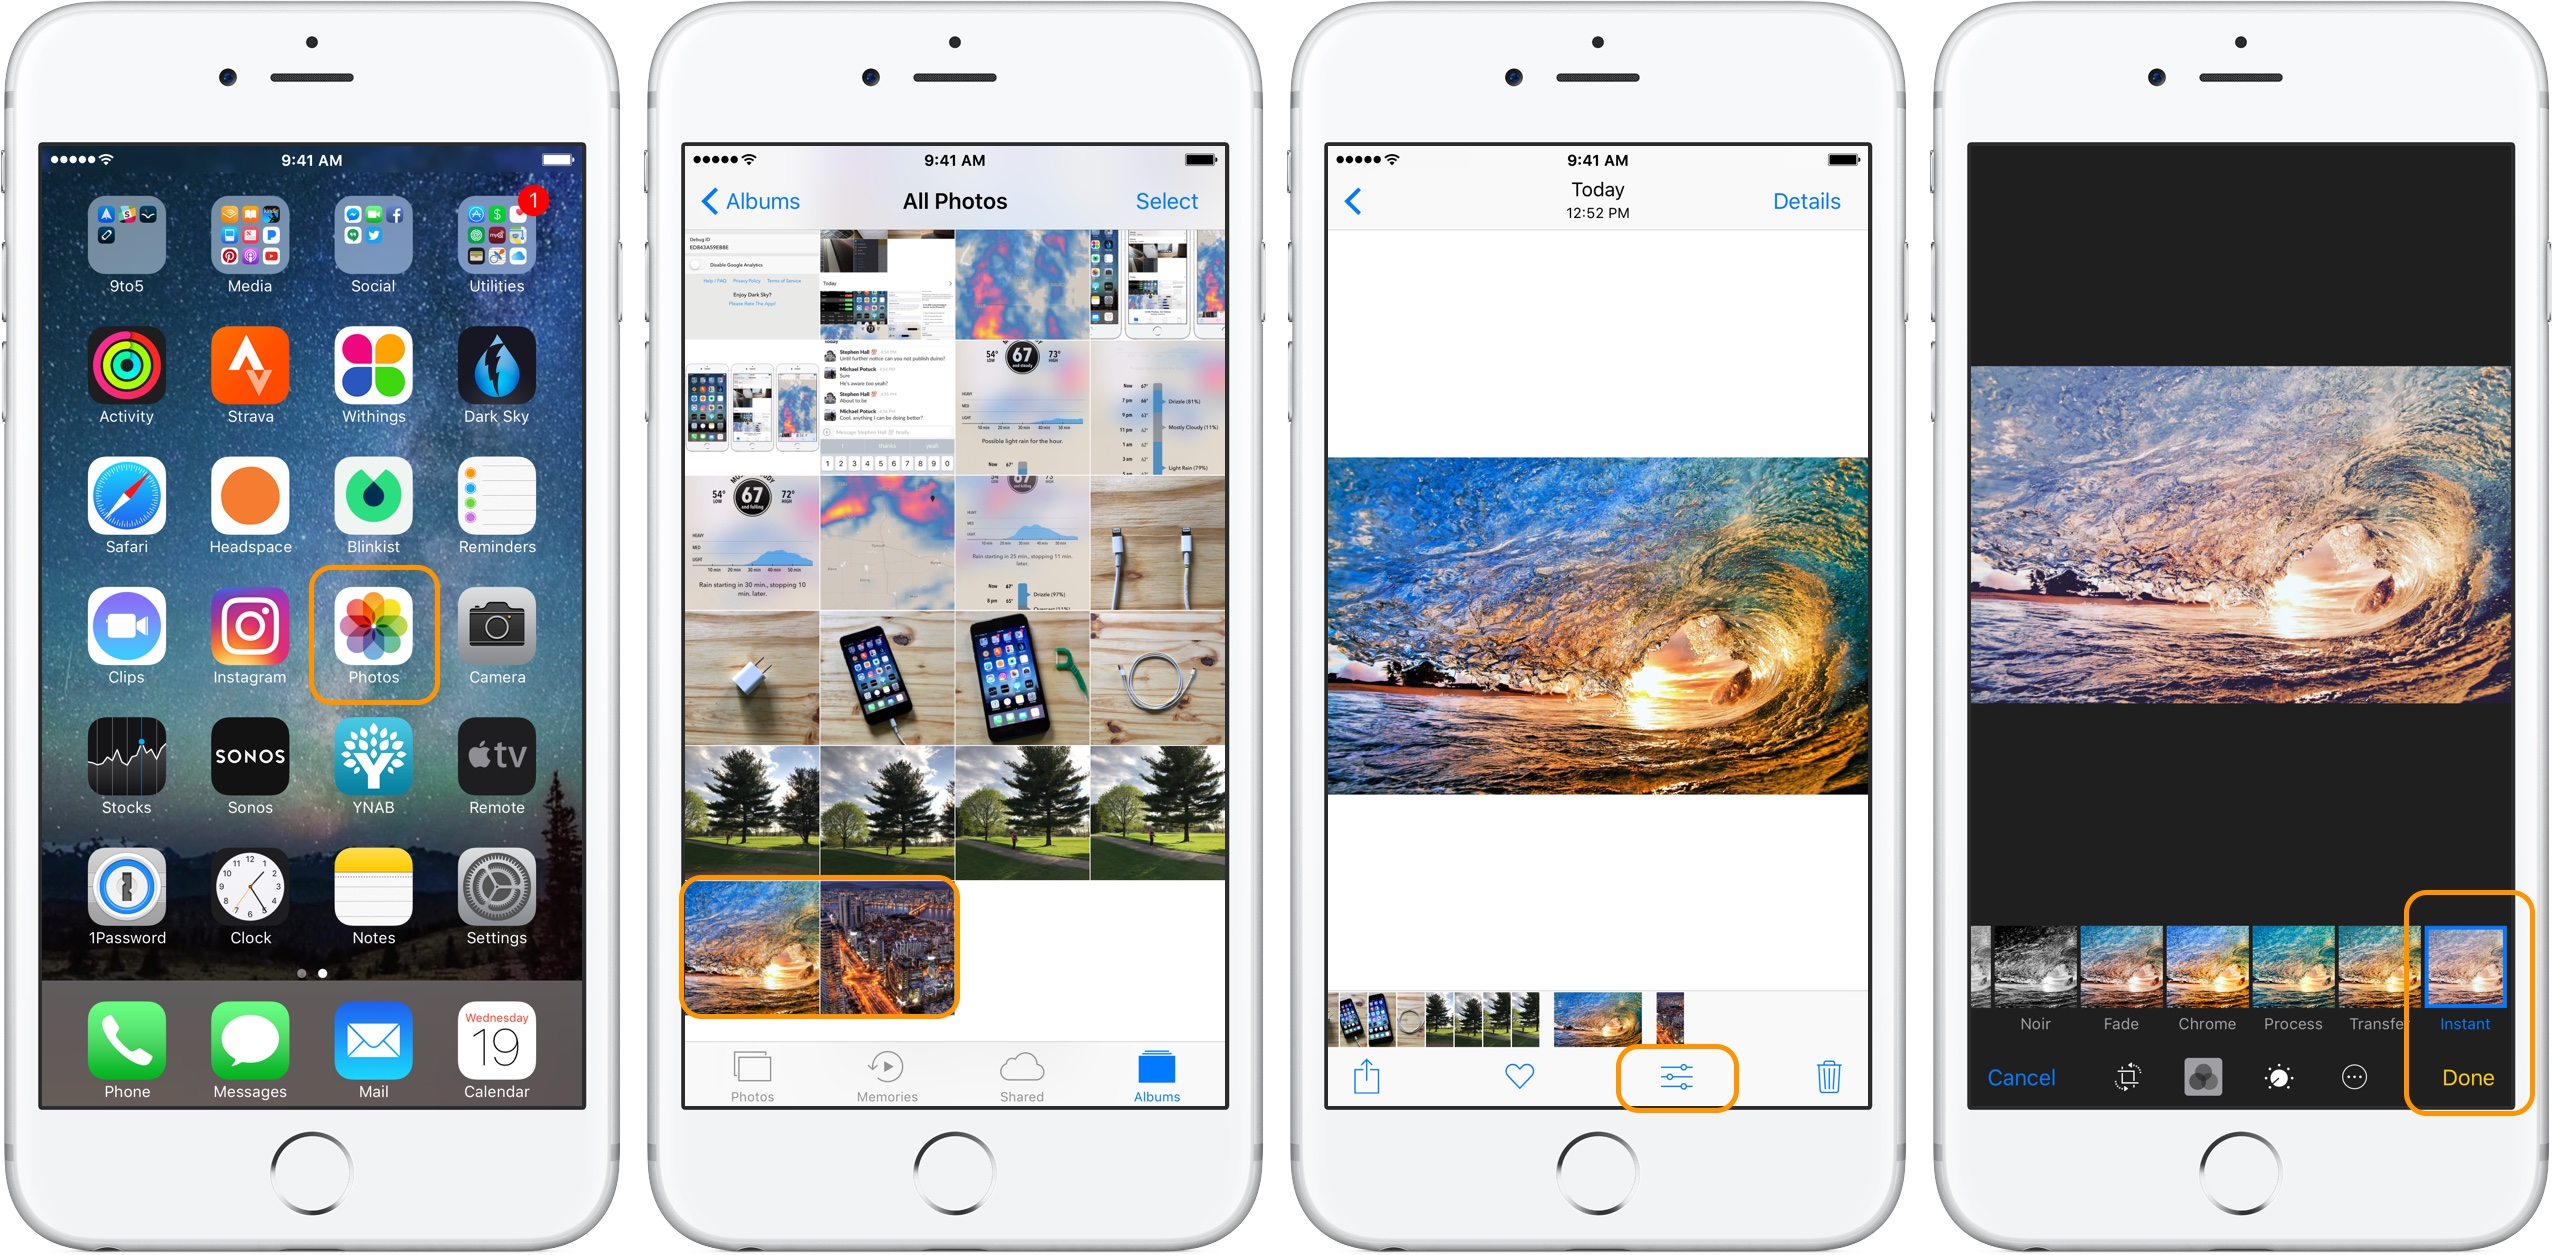 icloud photo library on iphone 4